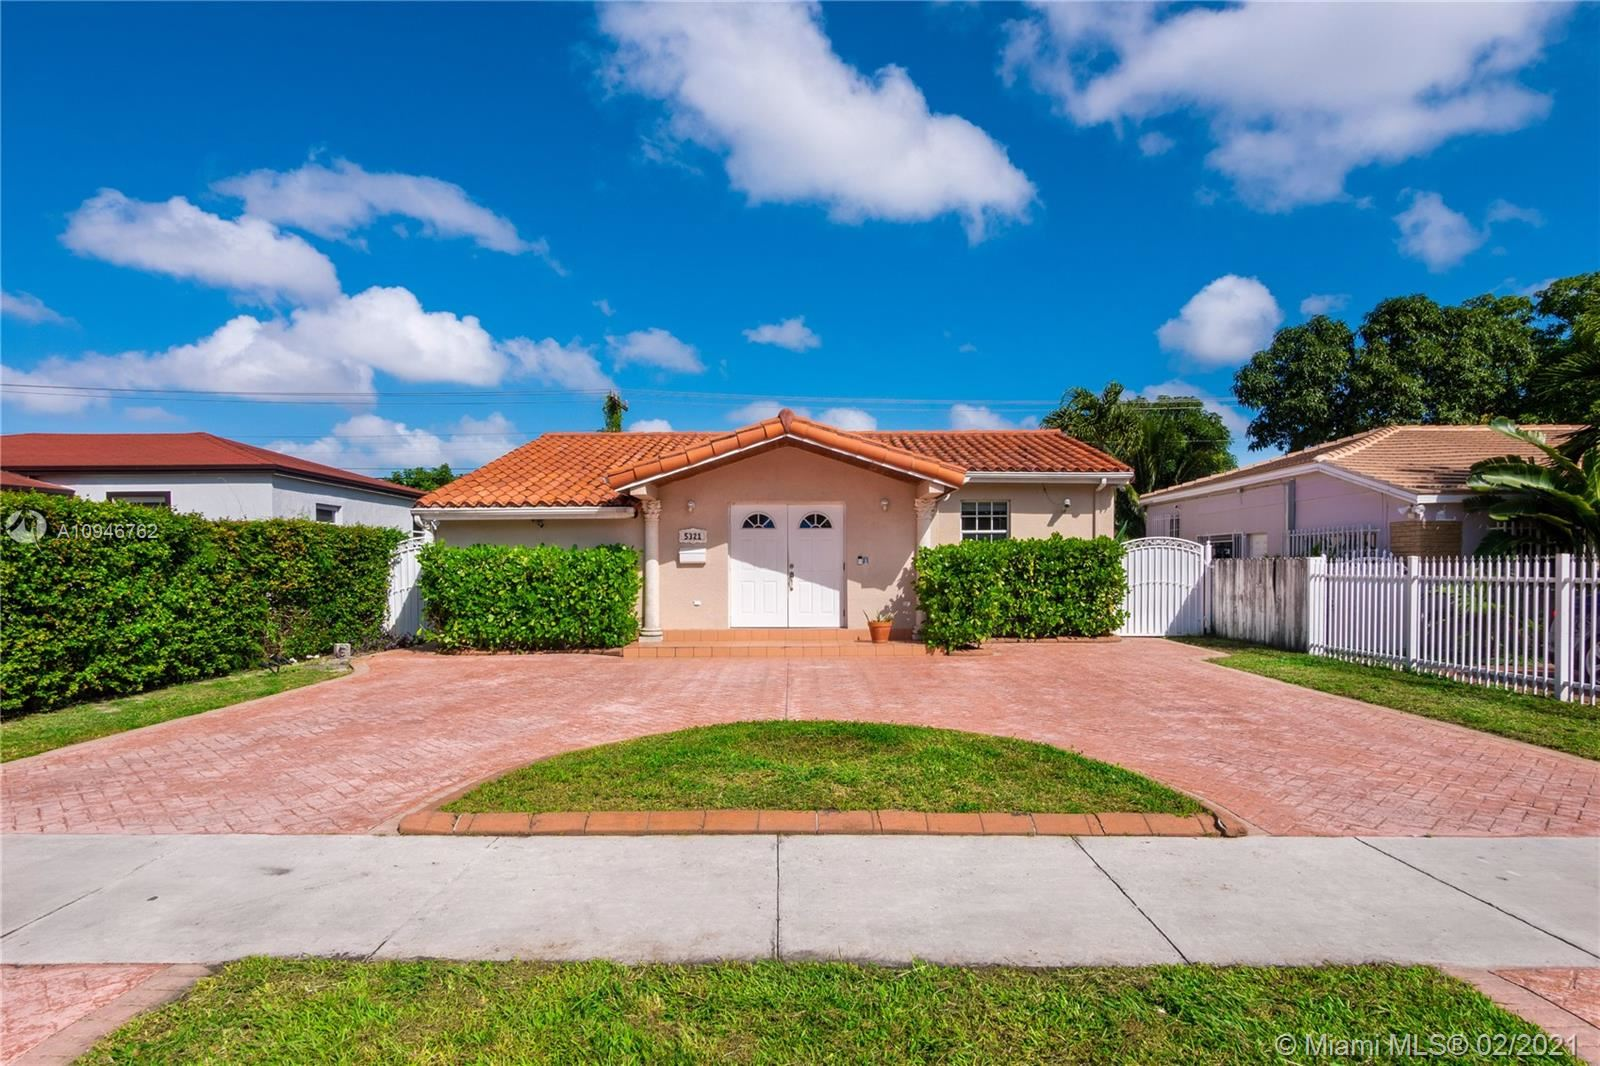 5321 SW 5th St, Miami, FL 33134 - #: A10946762